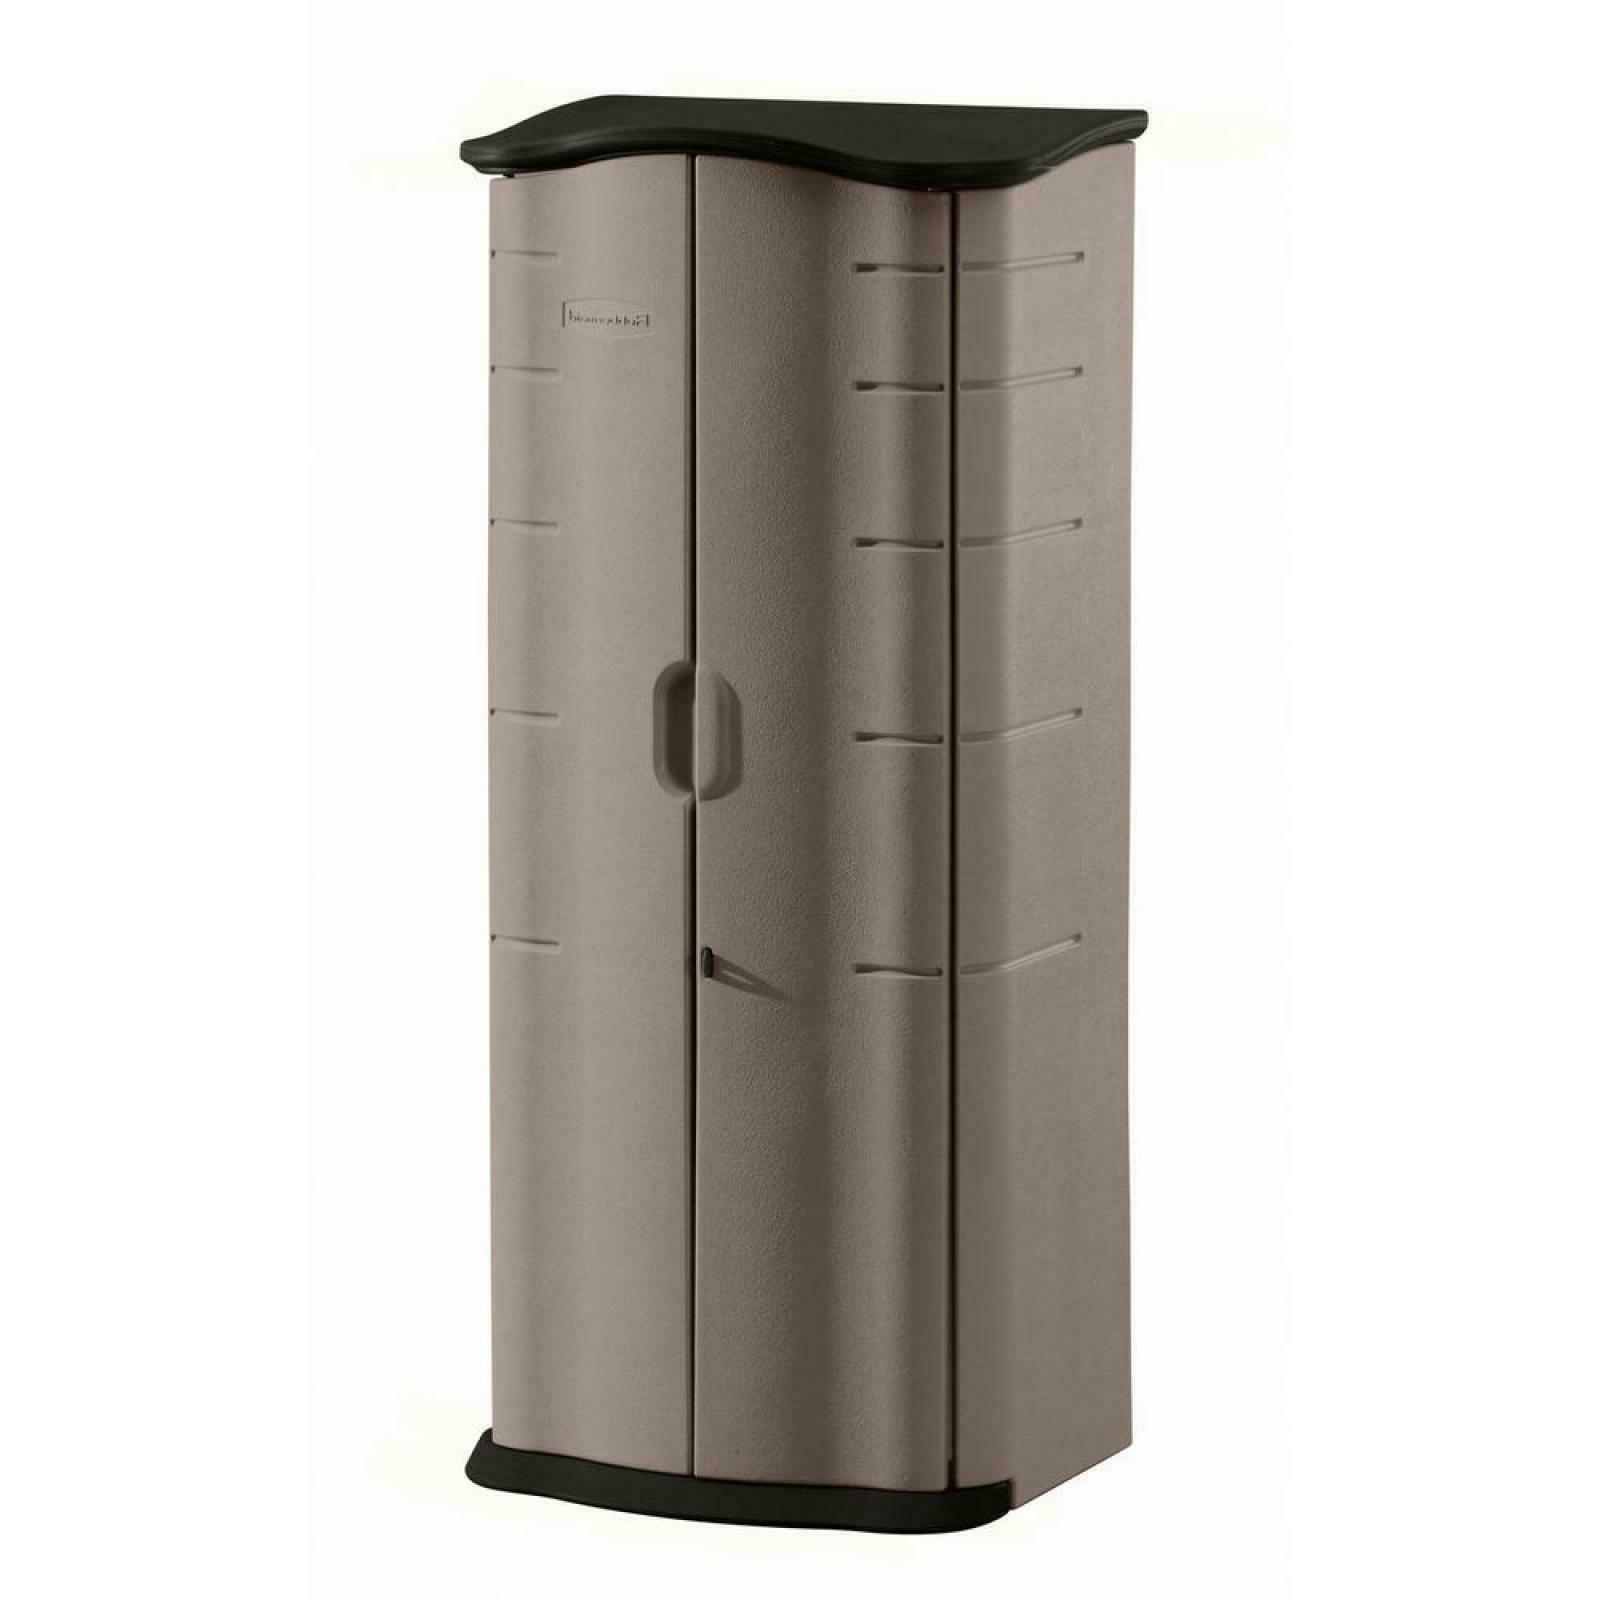 Rubbermaid Vertical Storage Shed 2 ft. x 2 ft. Weather-Impac